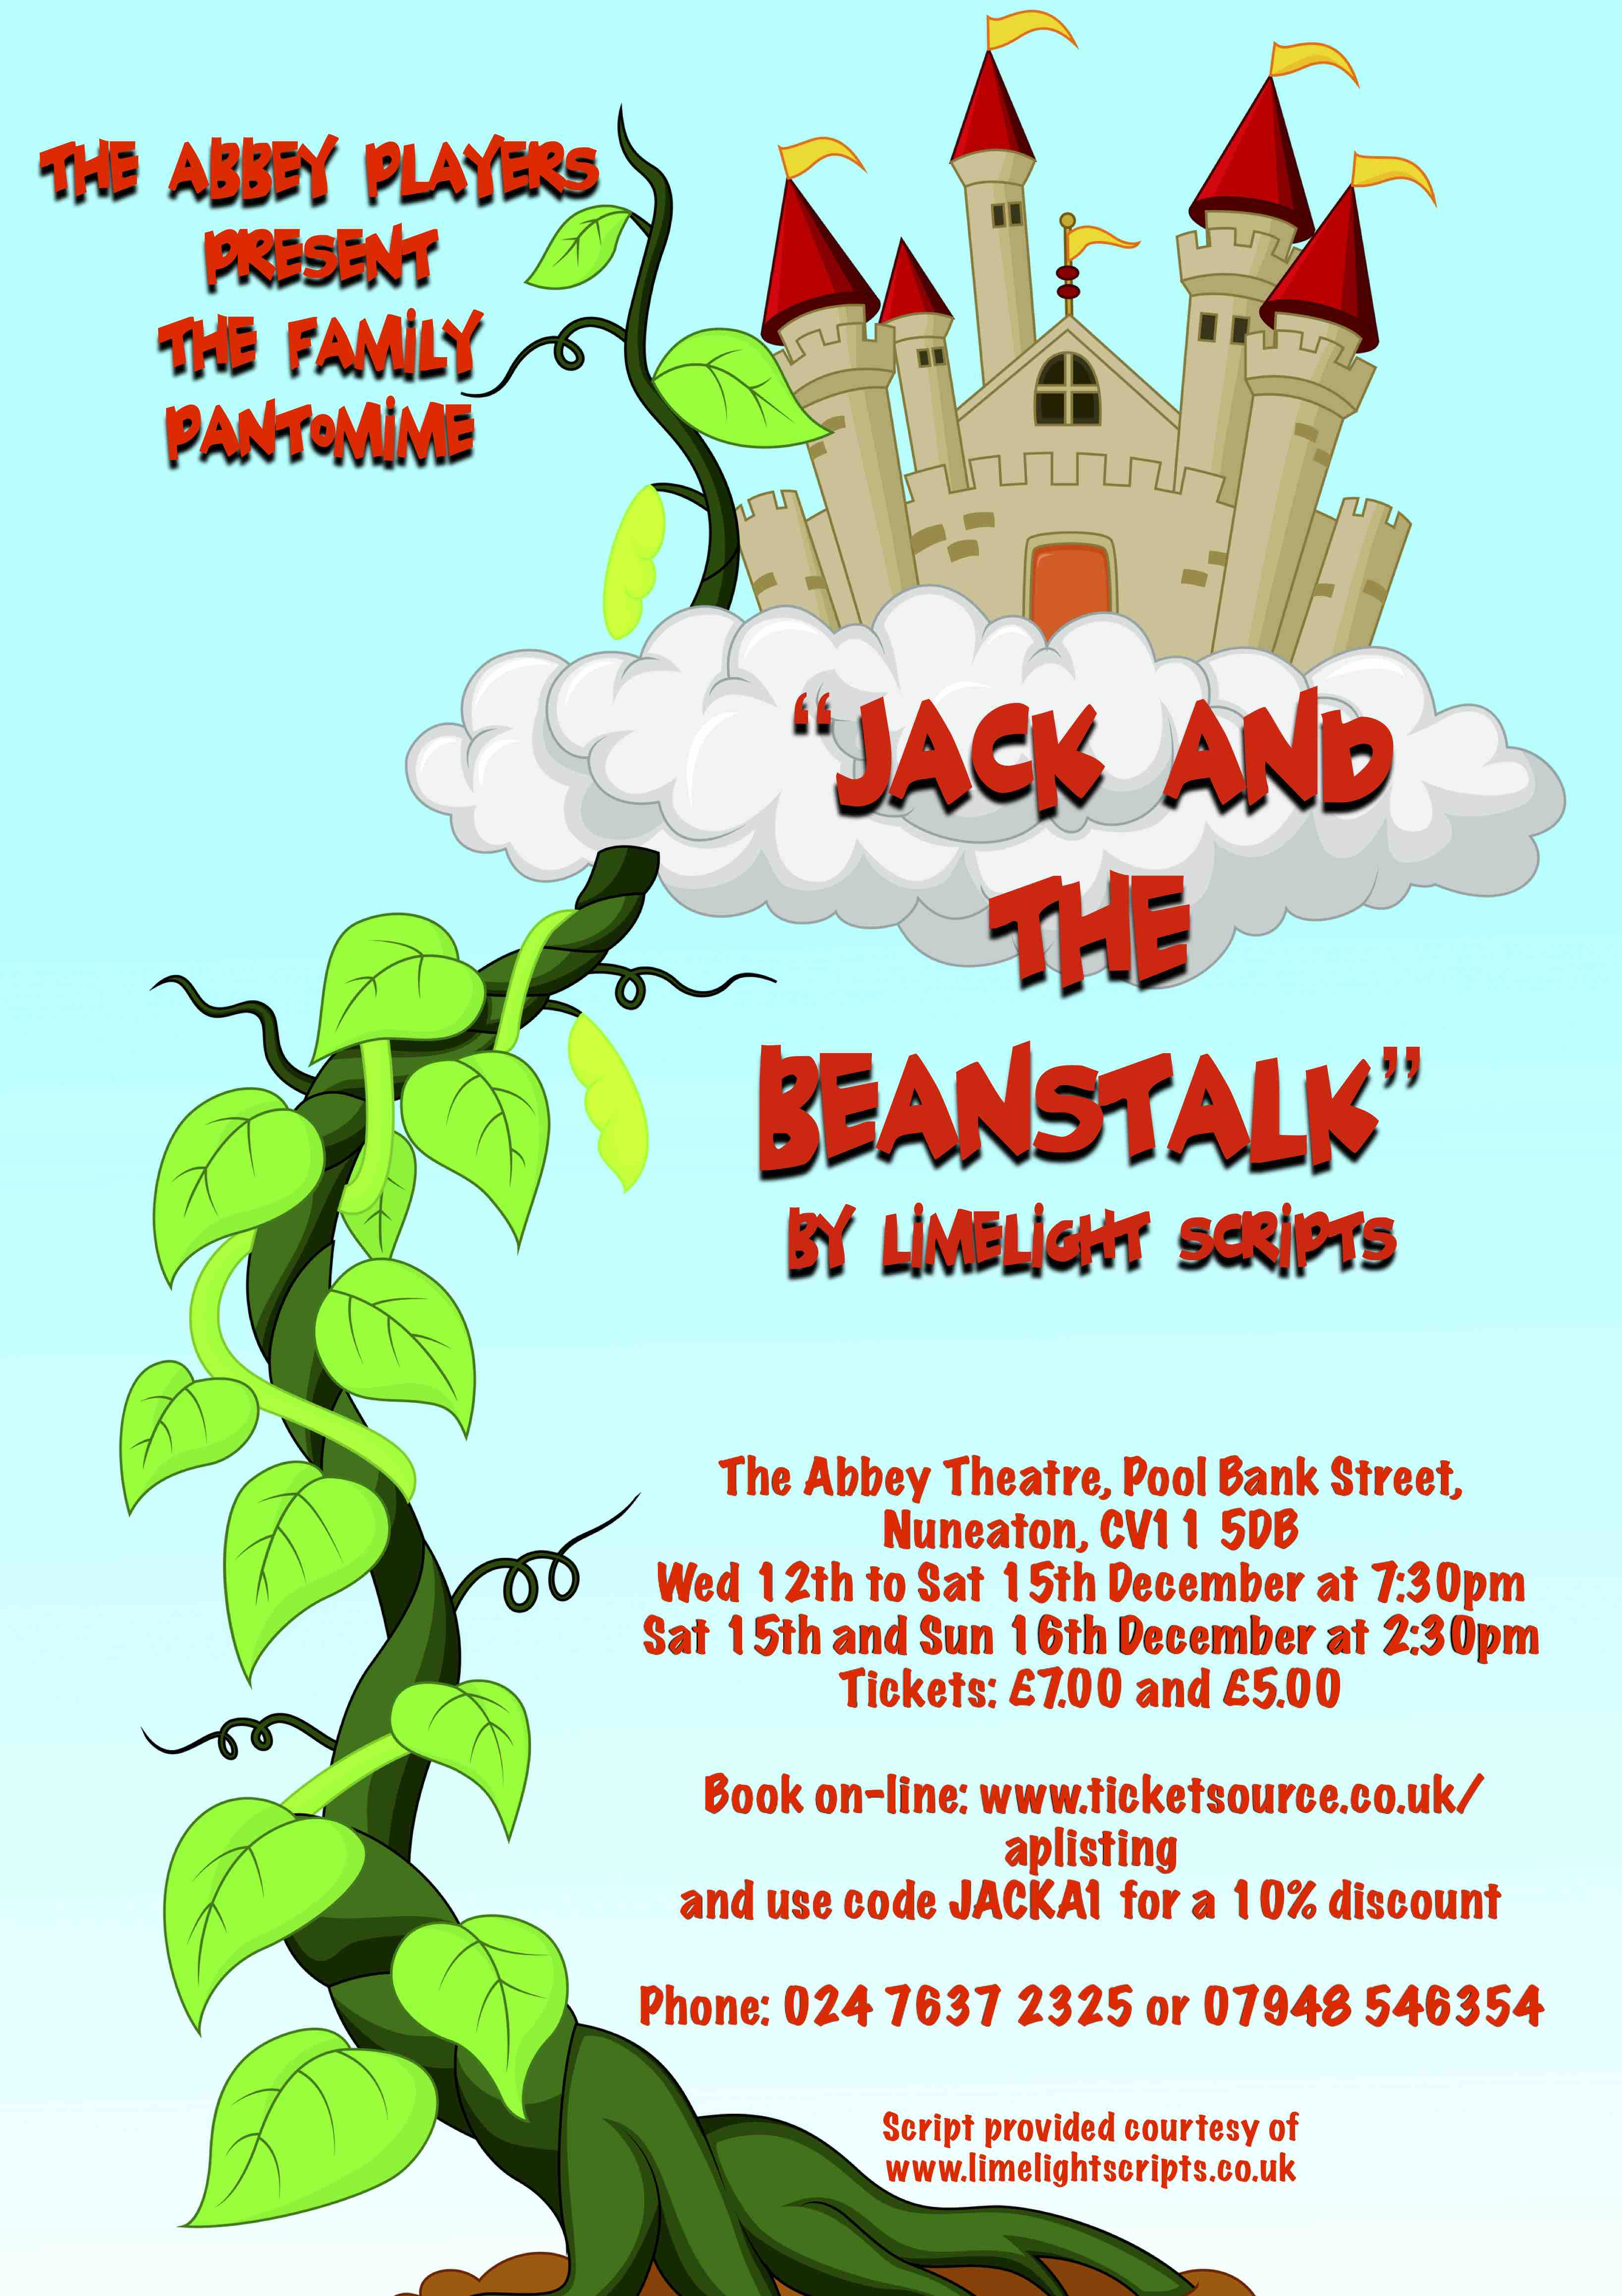 Abbey Players Present Jack And The Beanstalk By Limelight Scripts